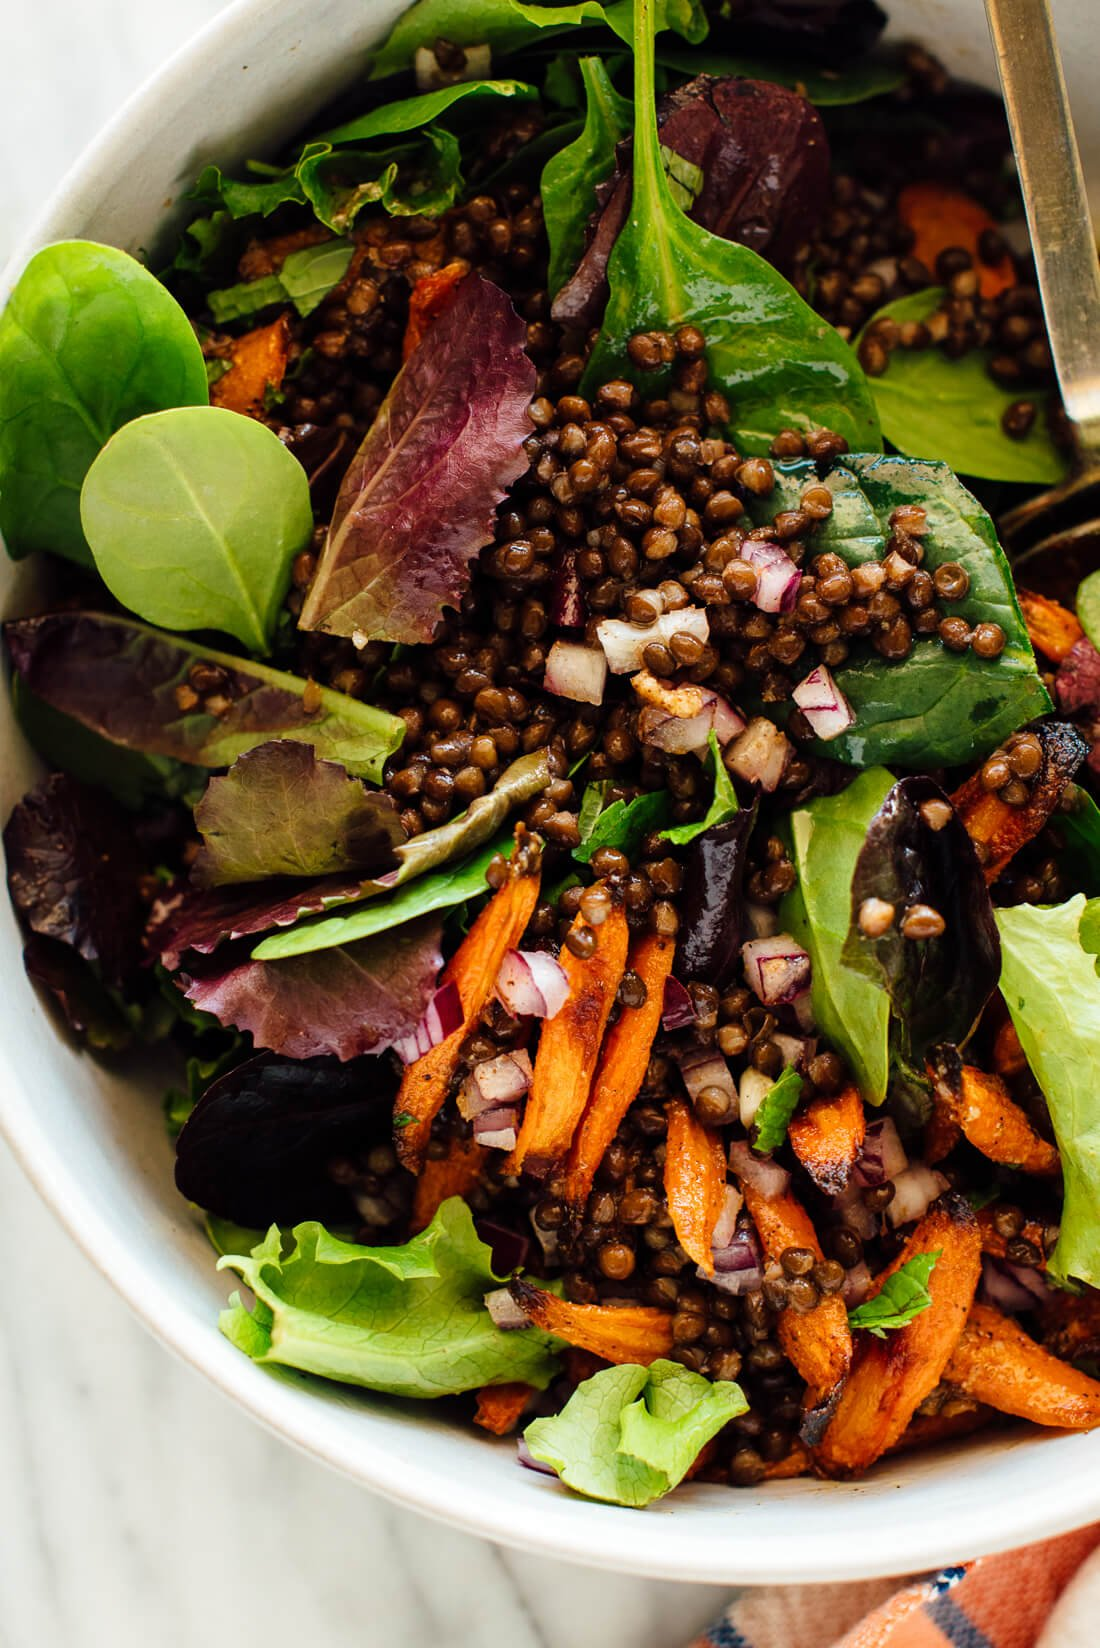 masala lentil salad recipe